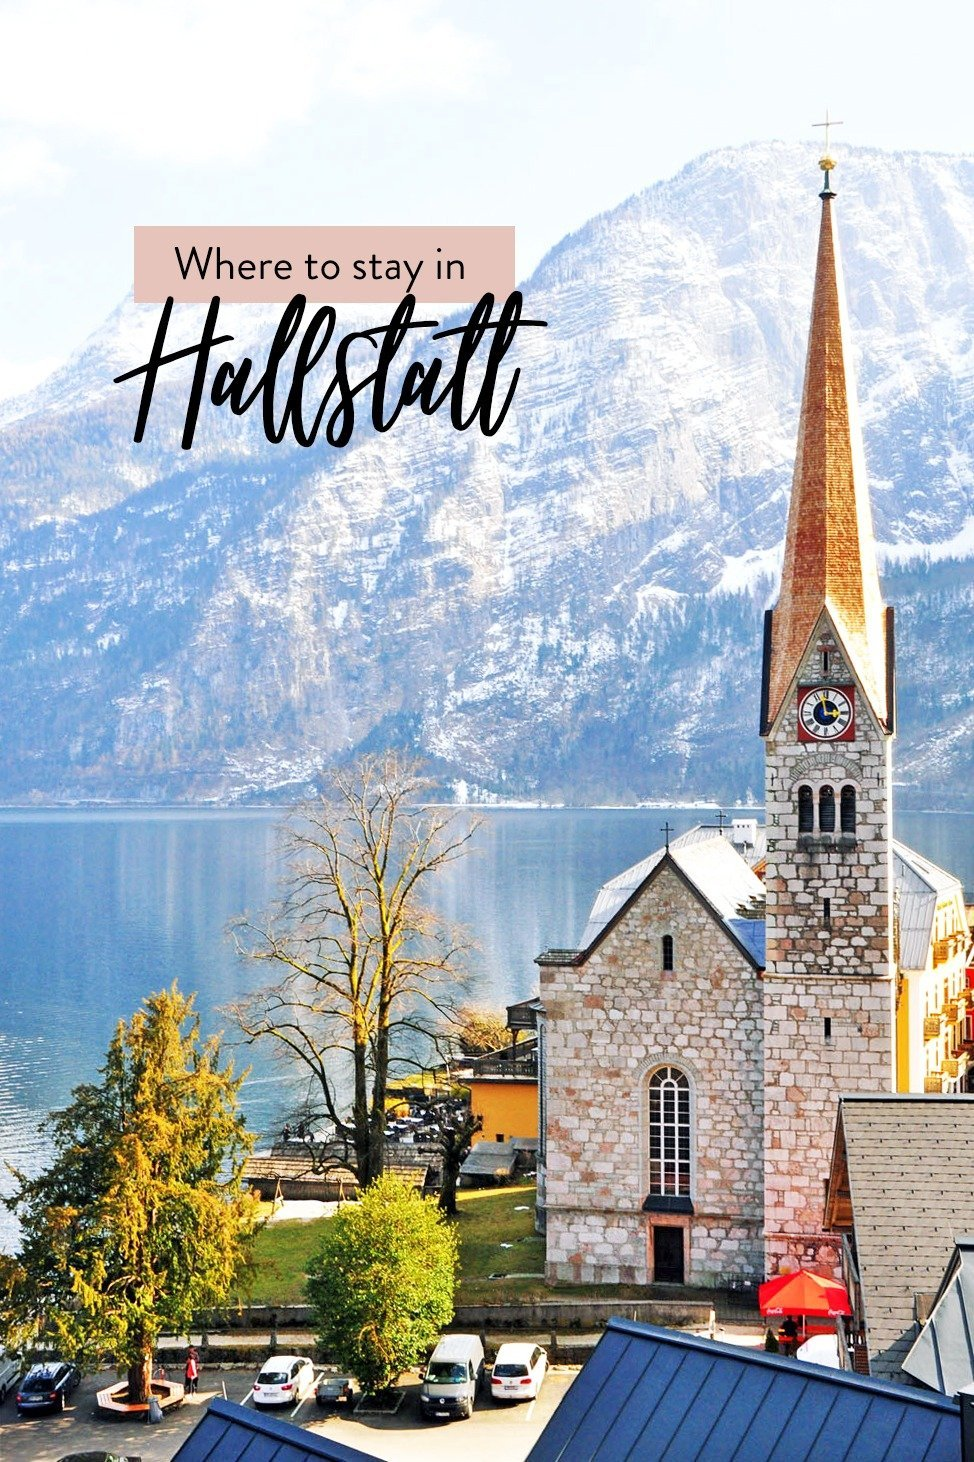 Venture to Austria's charming countryside and have a little holiday in Hallstatt, a gorgeous storybook town surrounded by the most amazing natural landscapes. If you're planning a trip soon, here's where to stay in Hallstatt.